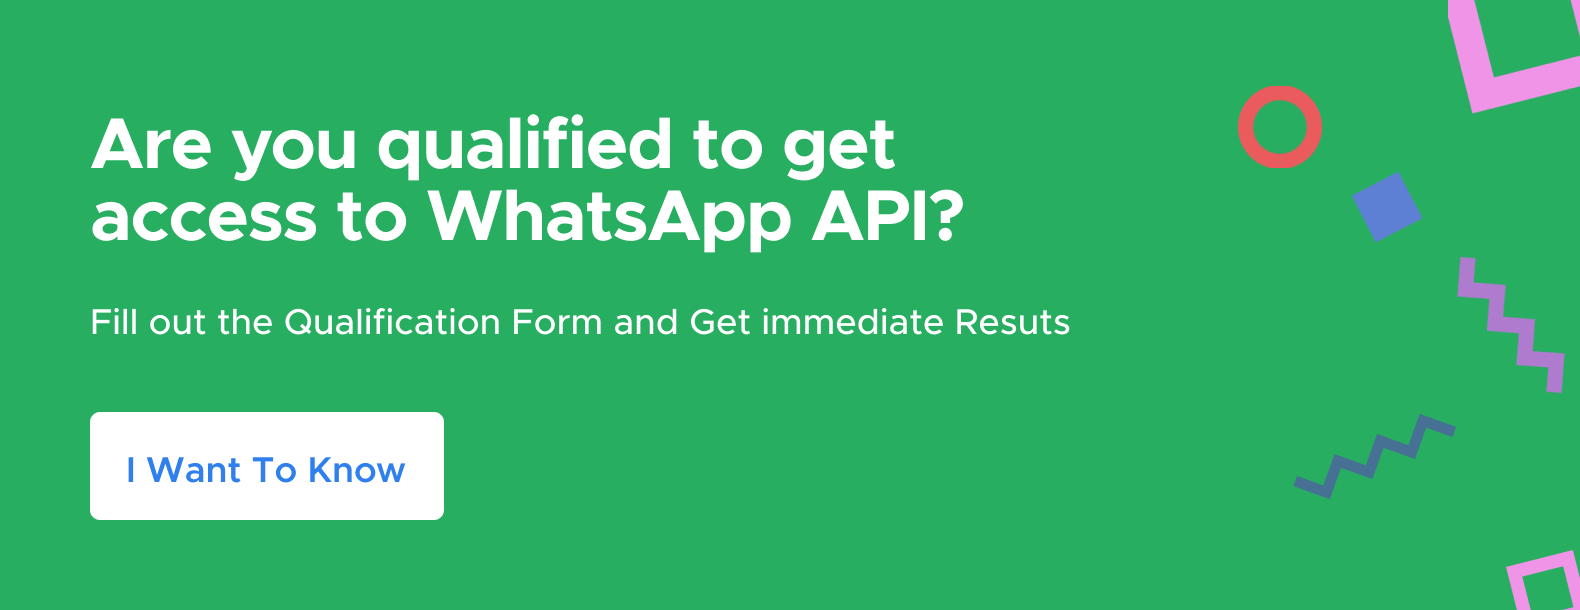 WhatsApp Qualification Form